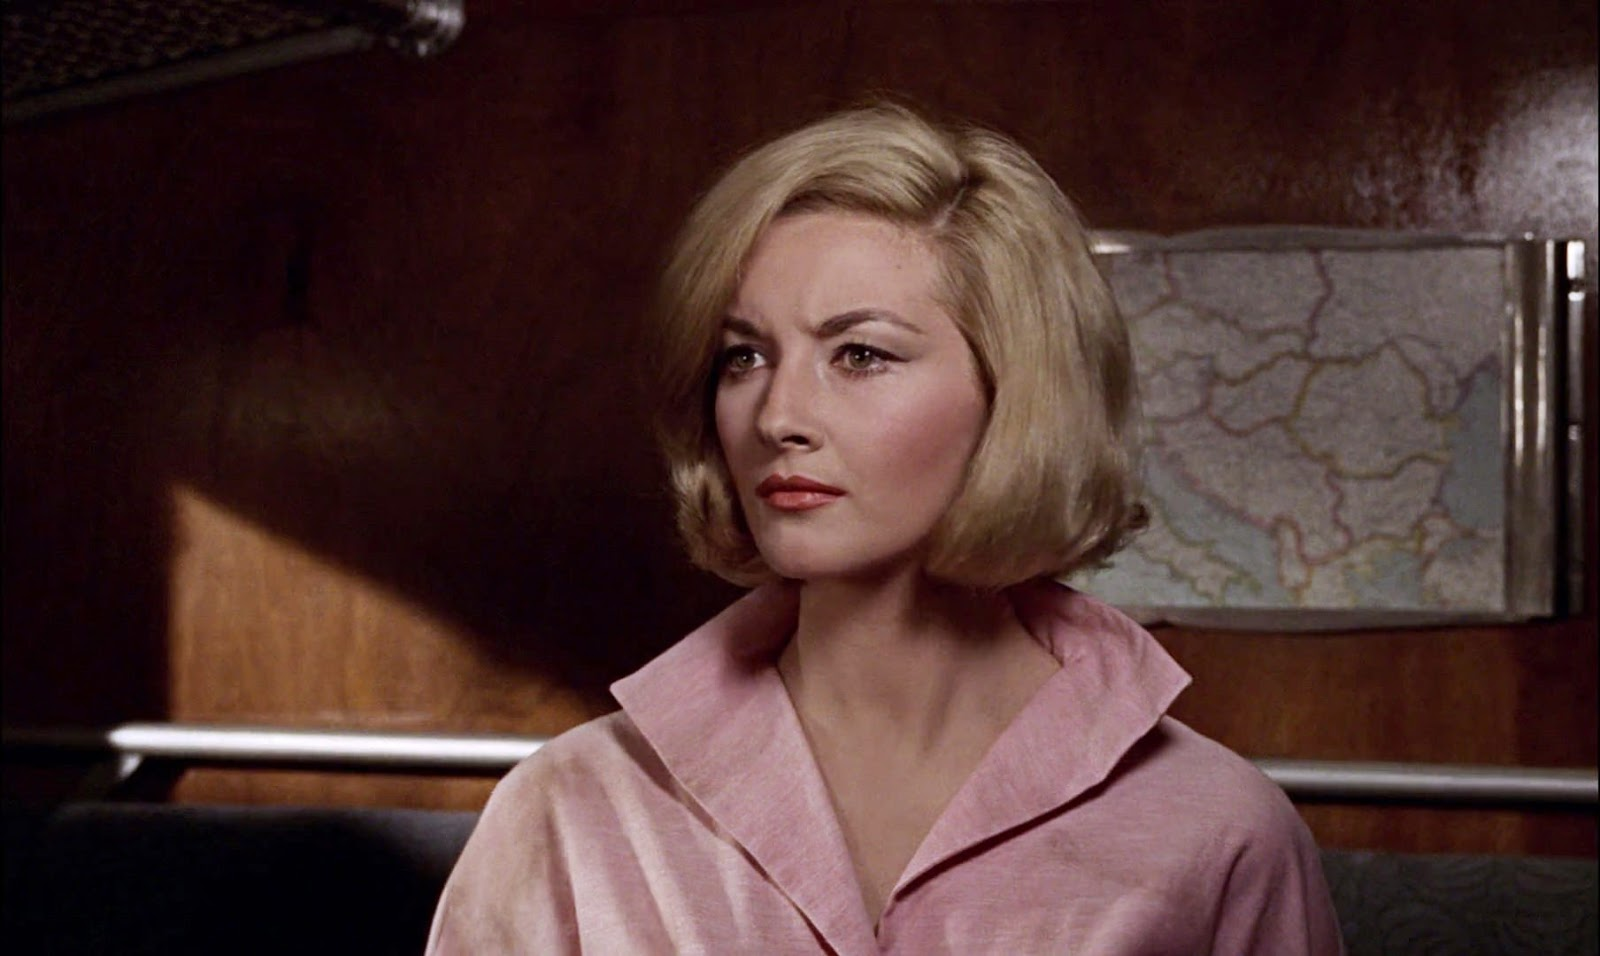 Daniela Bianchi on Suiting